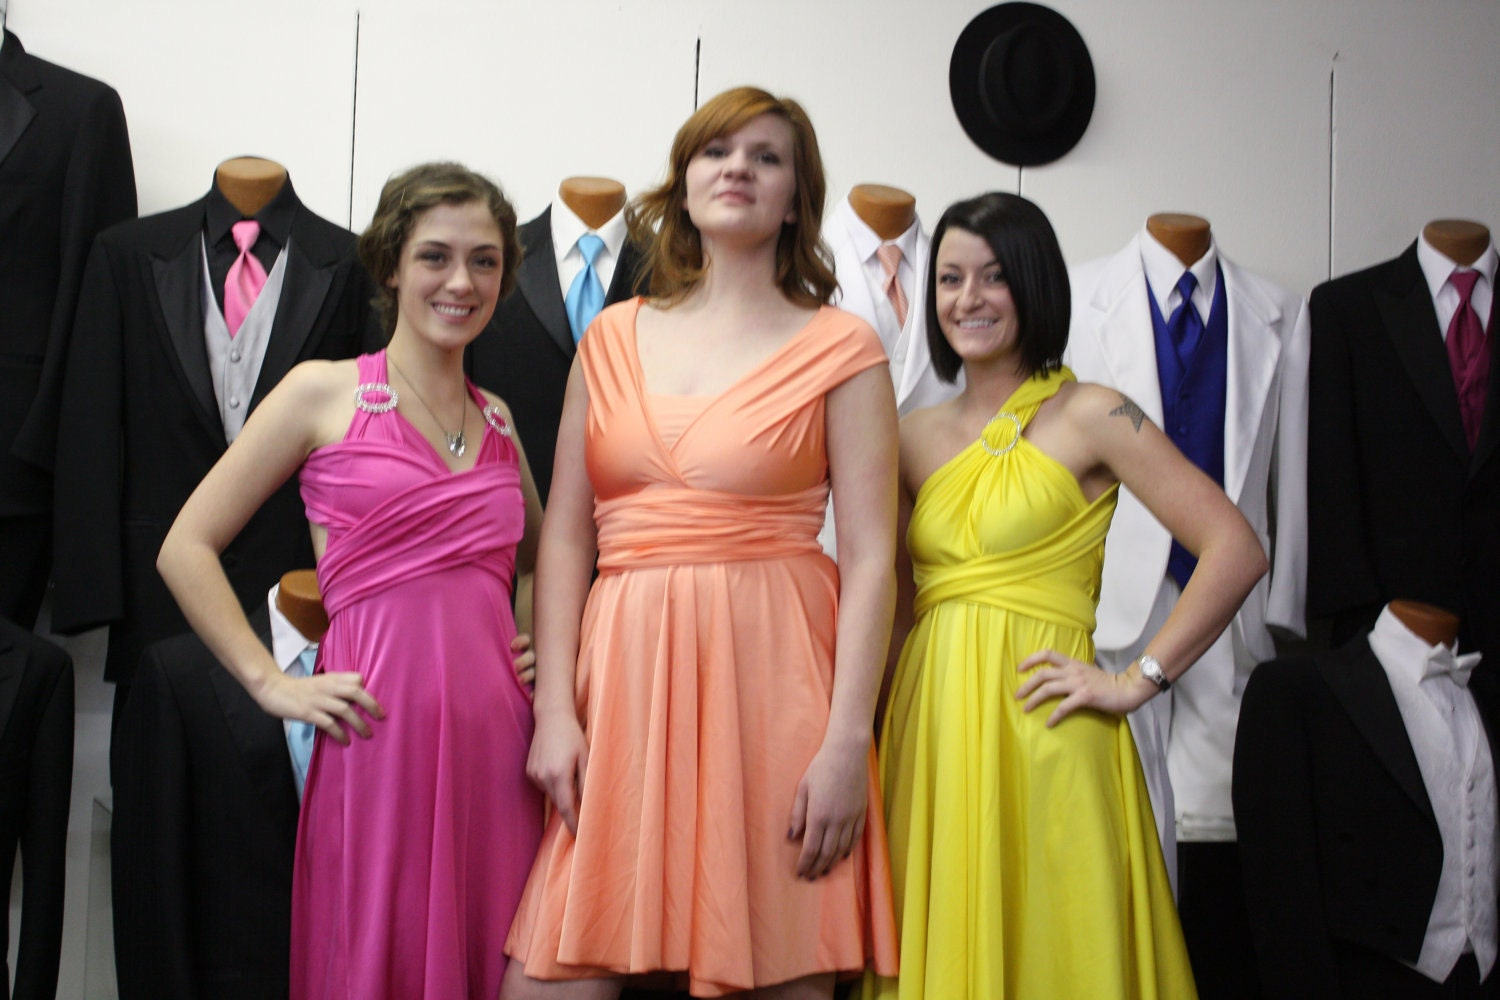 Fuschia Dresses In Plus Size For A Wedding